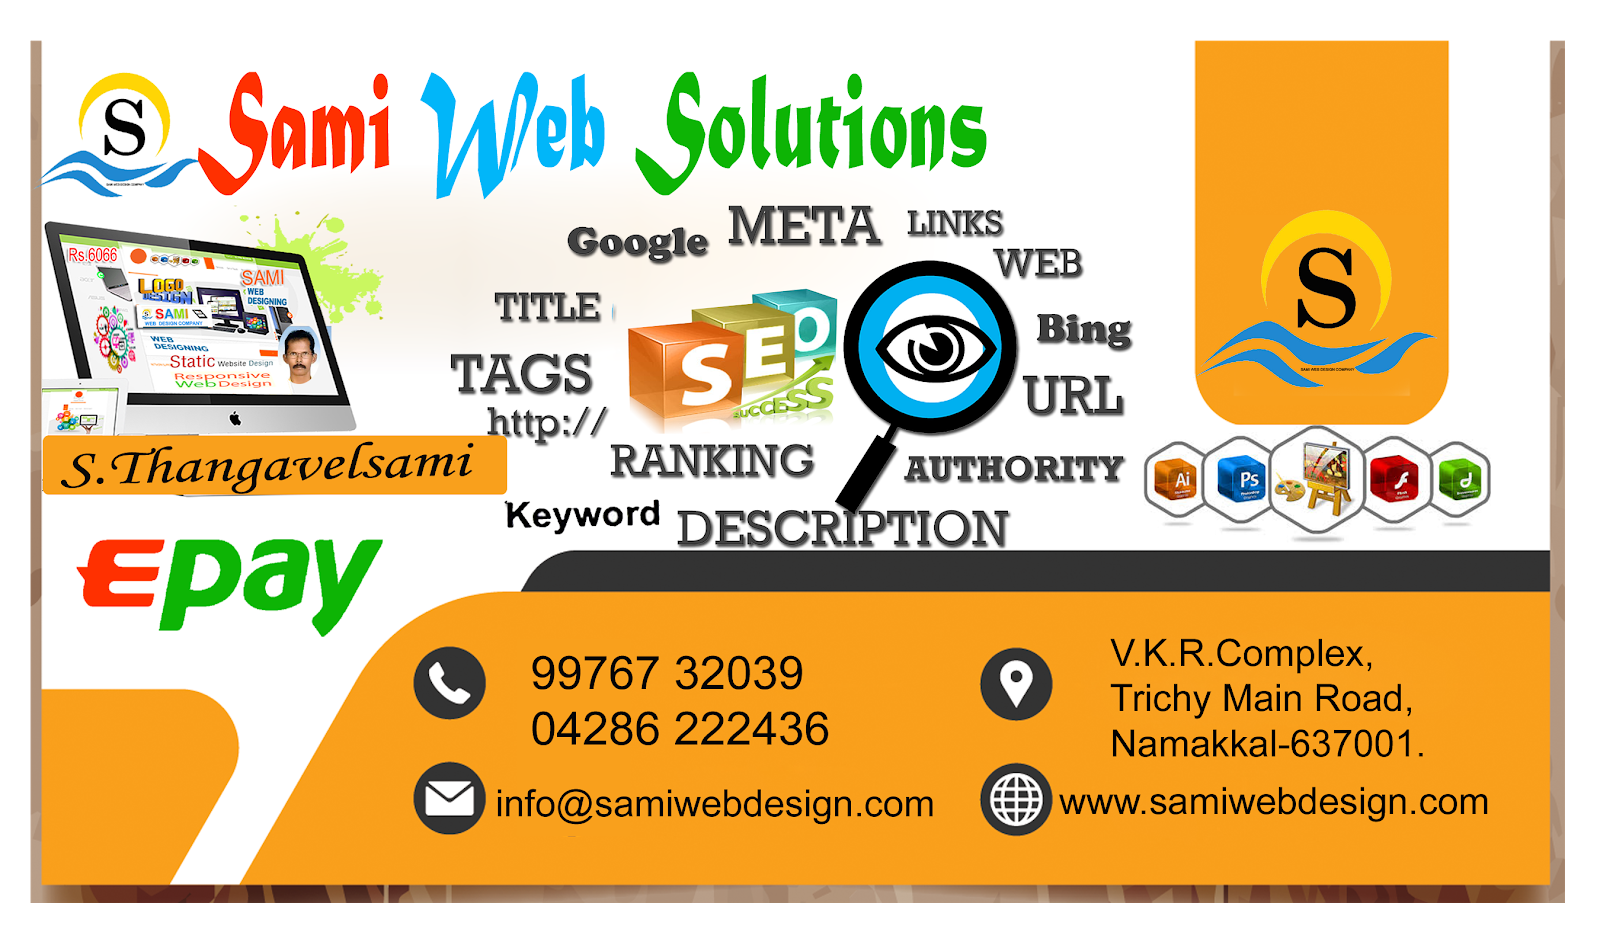 Welcome Web design Company Naml India Best Web Solutions ... on twitter homepage design, bing search engine, bing new look, bing layout, bing preview, bing graphics, office homepage design, msn homepage design, bing travel, bing mobile site, search engine homepage design, best homepage design, apple homepage design, bing advertising, bing animated background, google homepage design, myspace homepage design, bing internet,